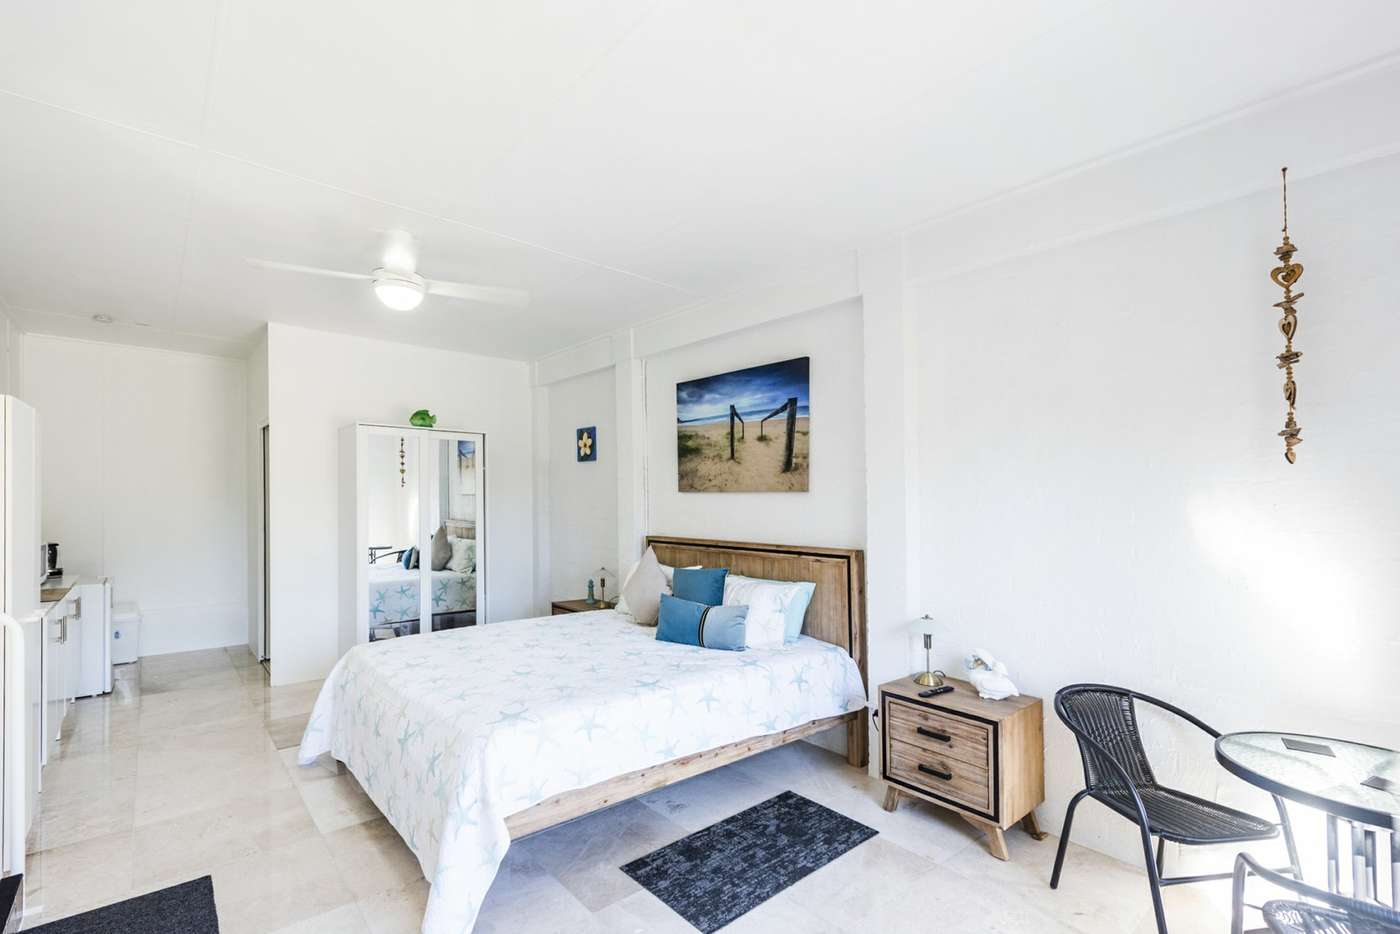 Main view of Homely studio listing, 1/16 Loxton Avenue, Iluka NSW 2466